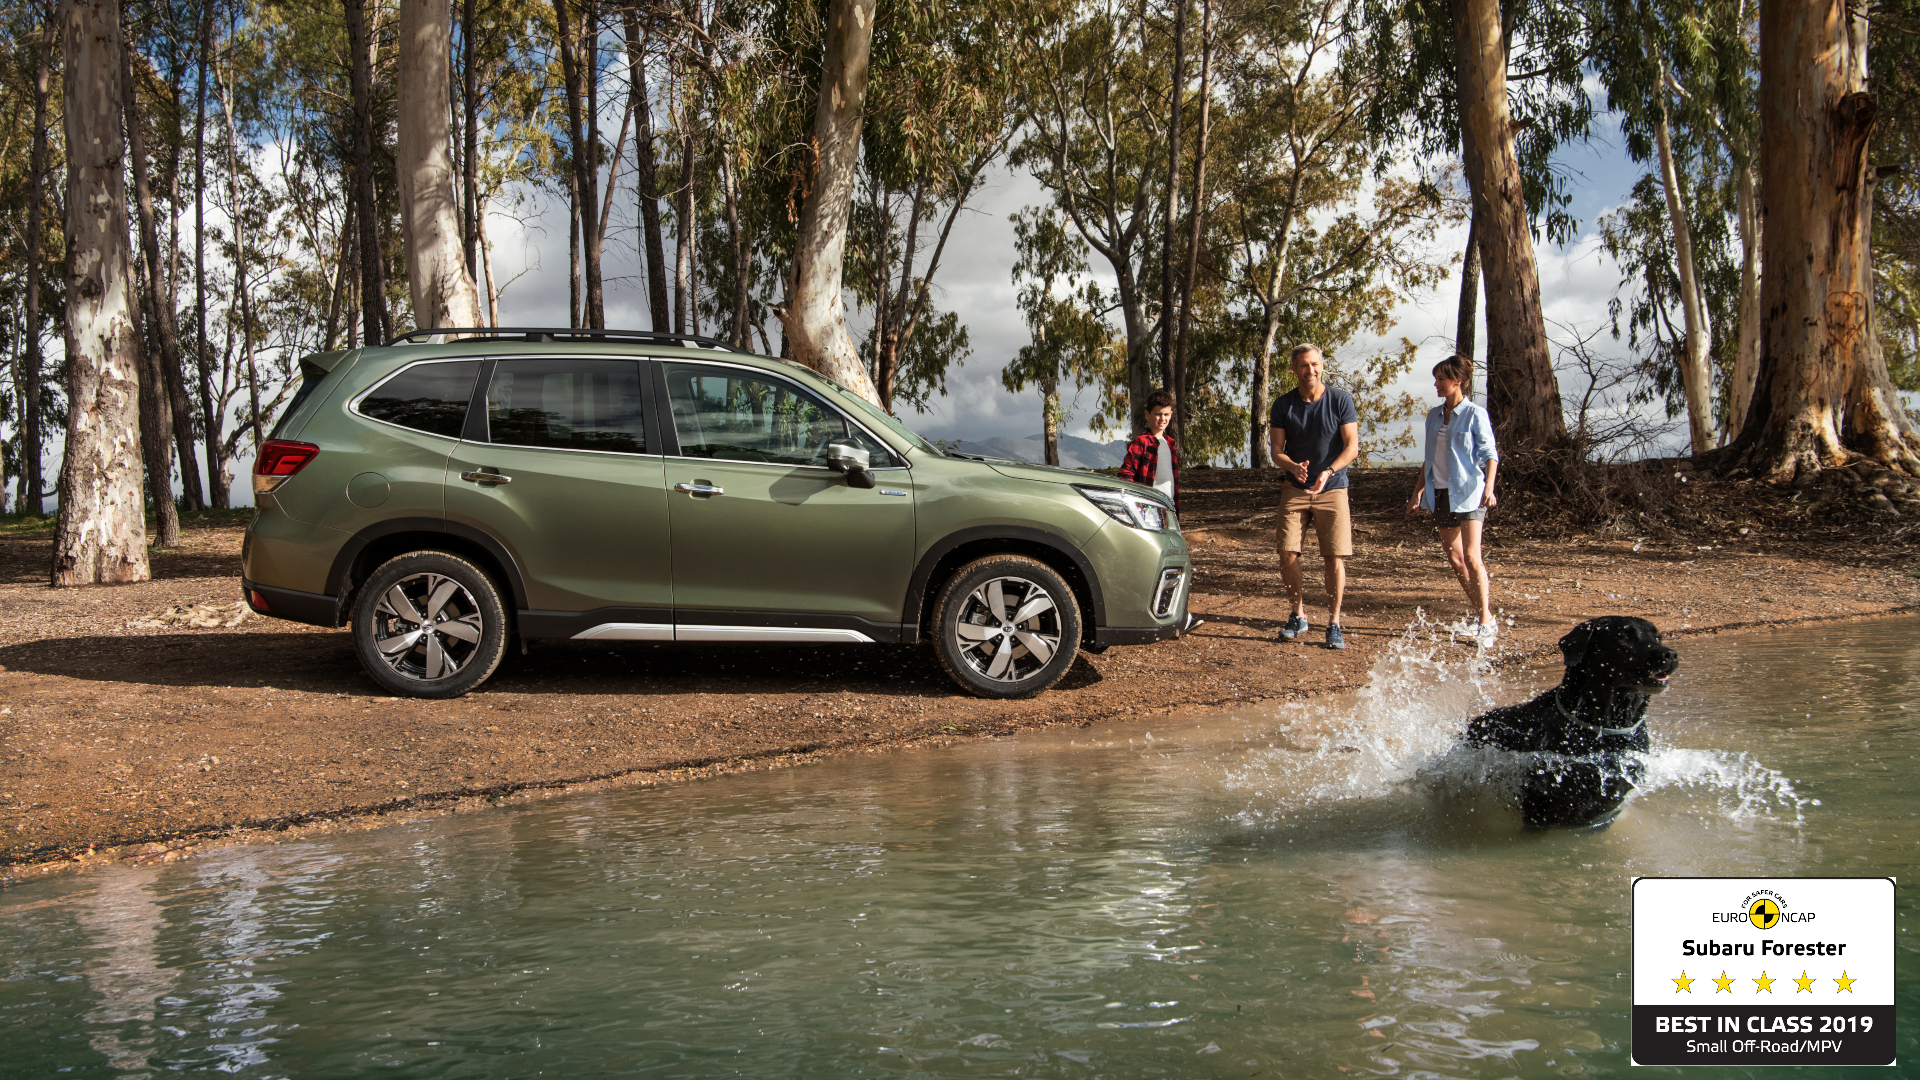 All-new Subaru Forester e-BOXER awarded Euro NCAP's Best in Class 2019